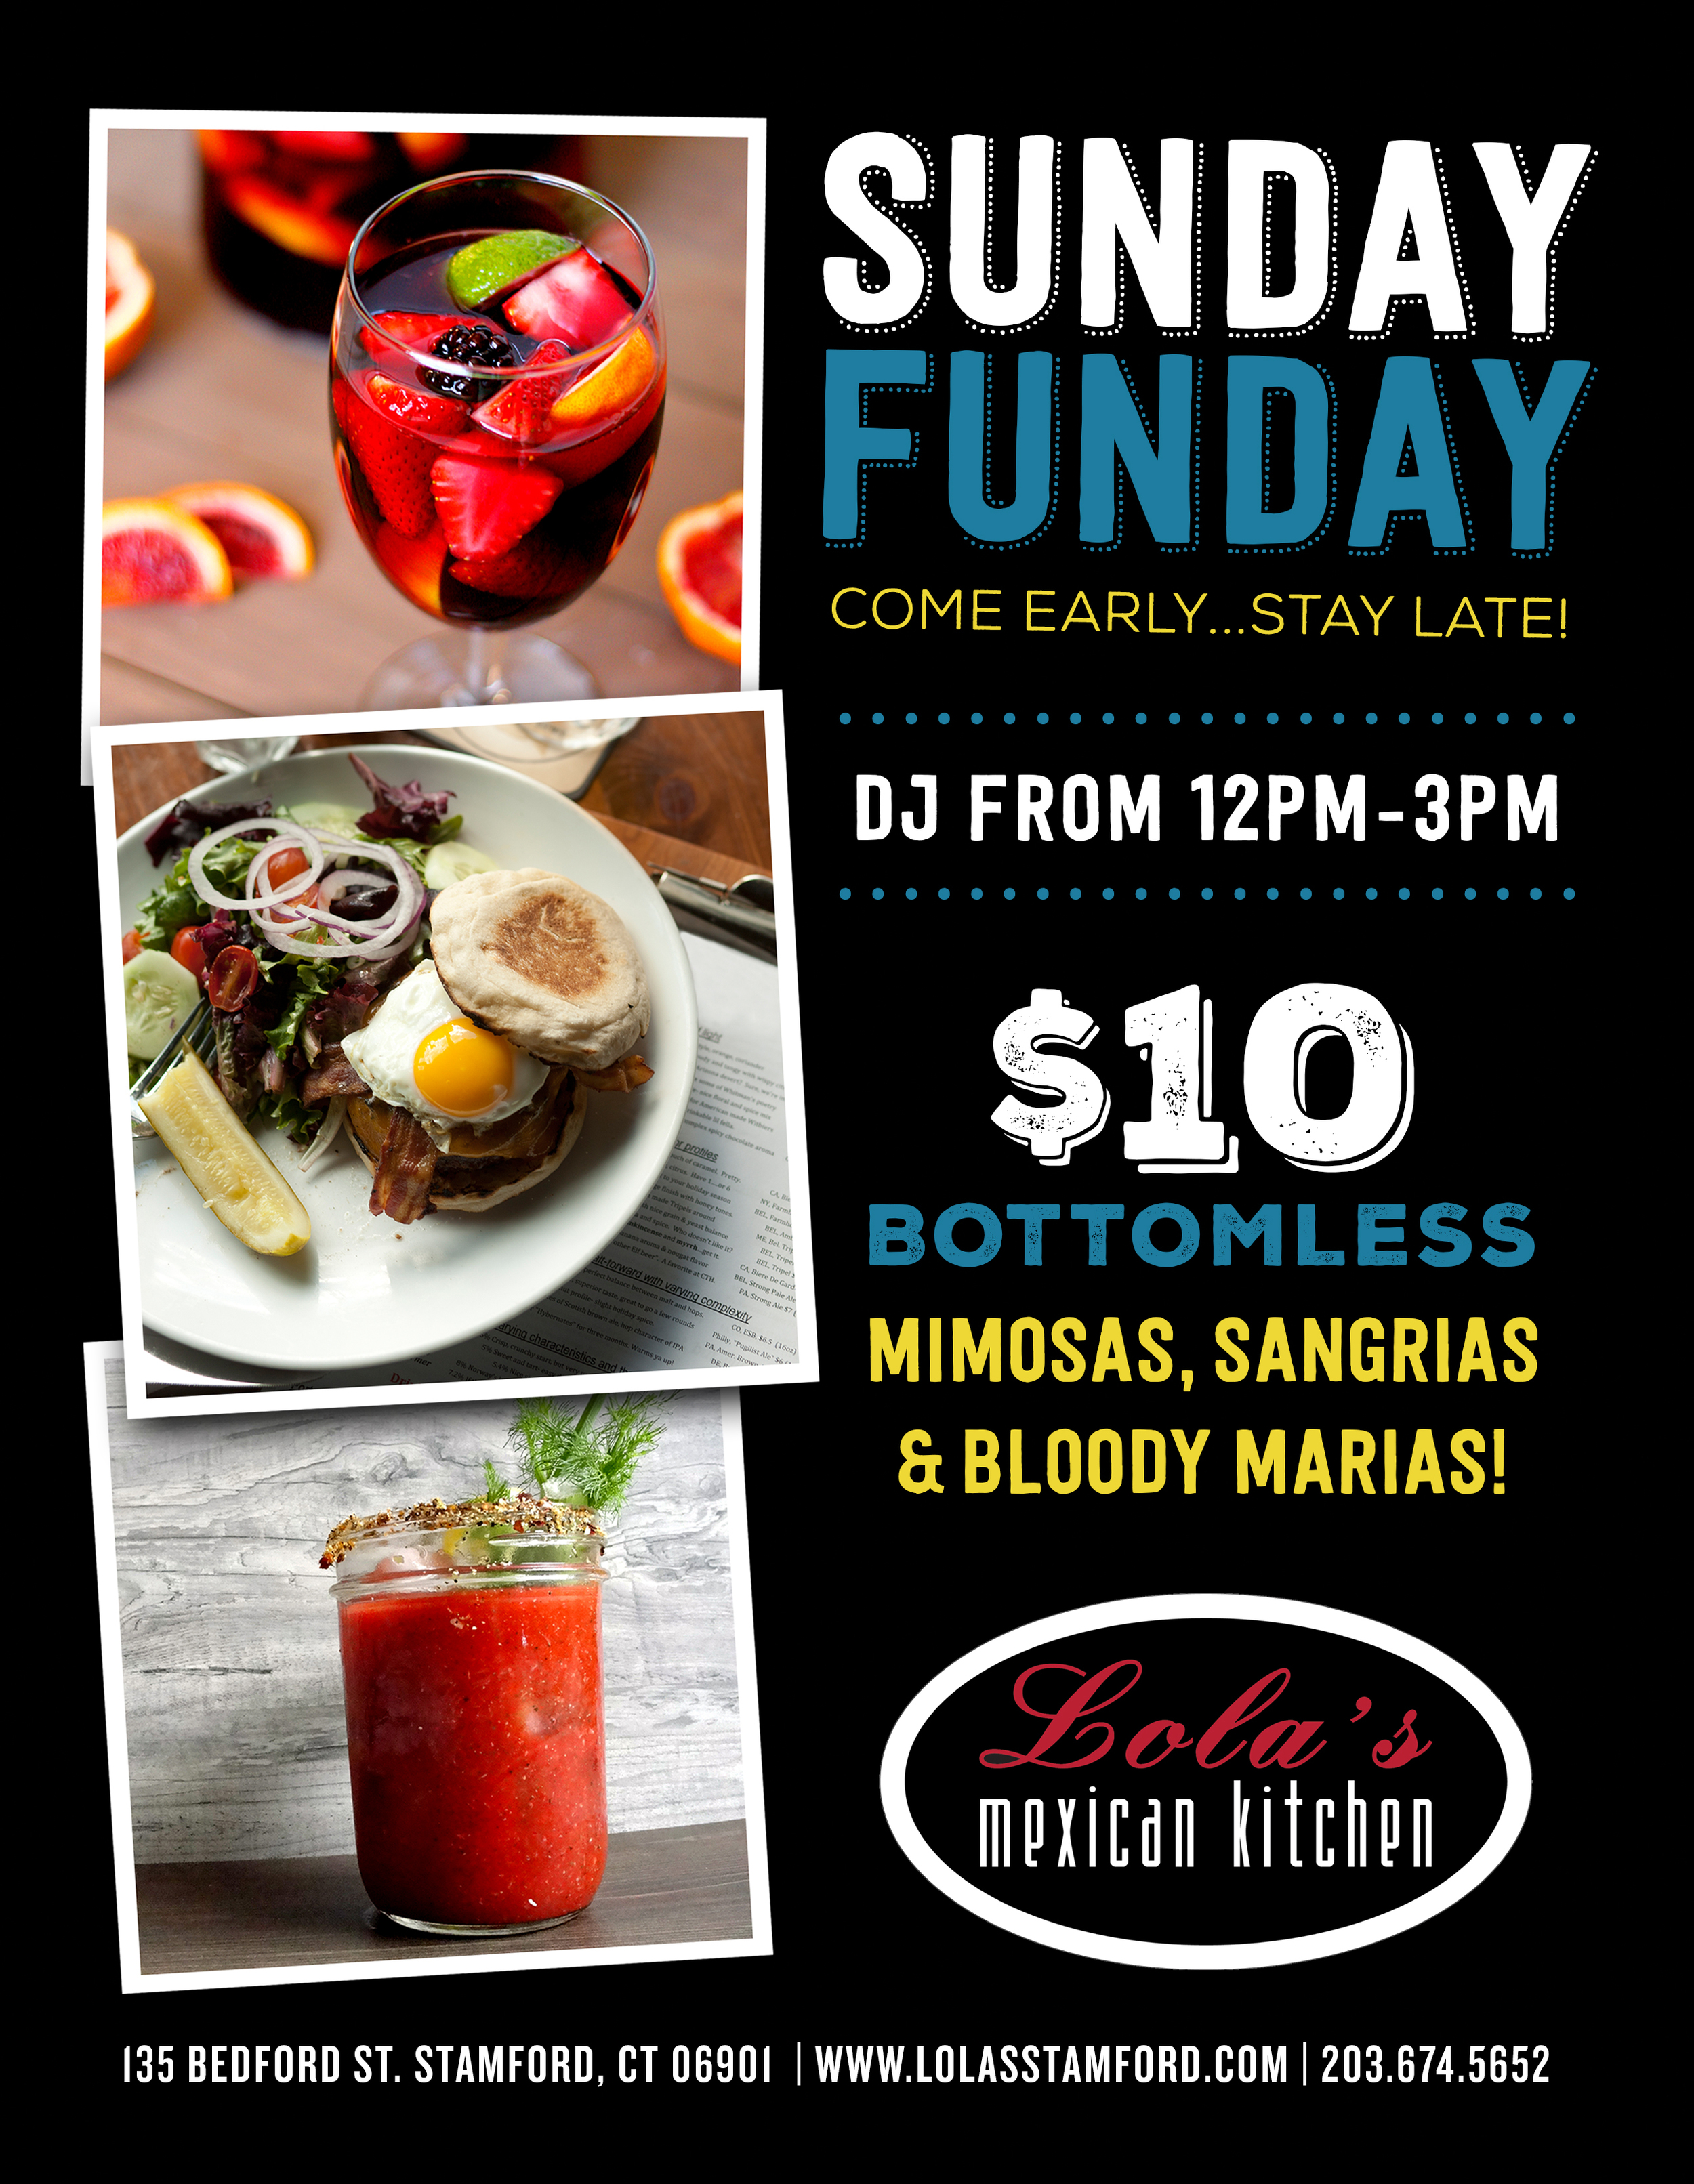 STARTING SUPER BOWL SUNDAY, FEB. 2ND, JOIN US AT LOLA'S MEXICAN KITCHEN @ 12PM FOR SUNDAY FUNDAY! $10 BOTTOMLESS MIMOSAS, SANGRIAS + BLOODY MARIAS. MUSIC BY YOURS TRULY 12PM-3PM. MEET US THERE!